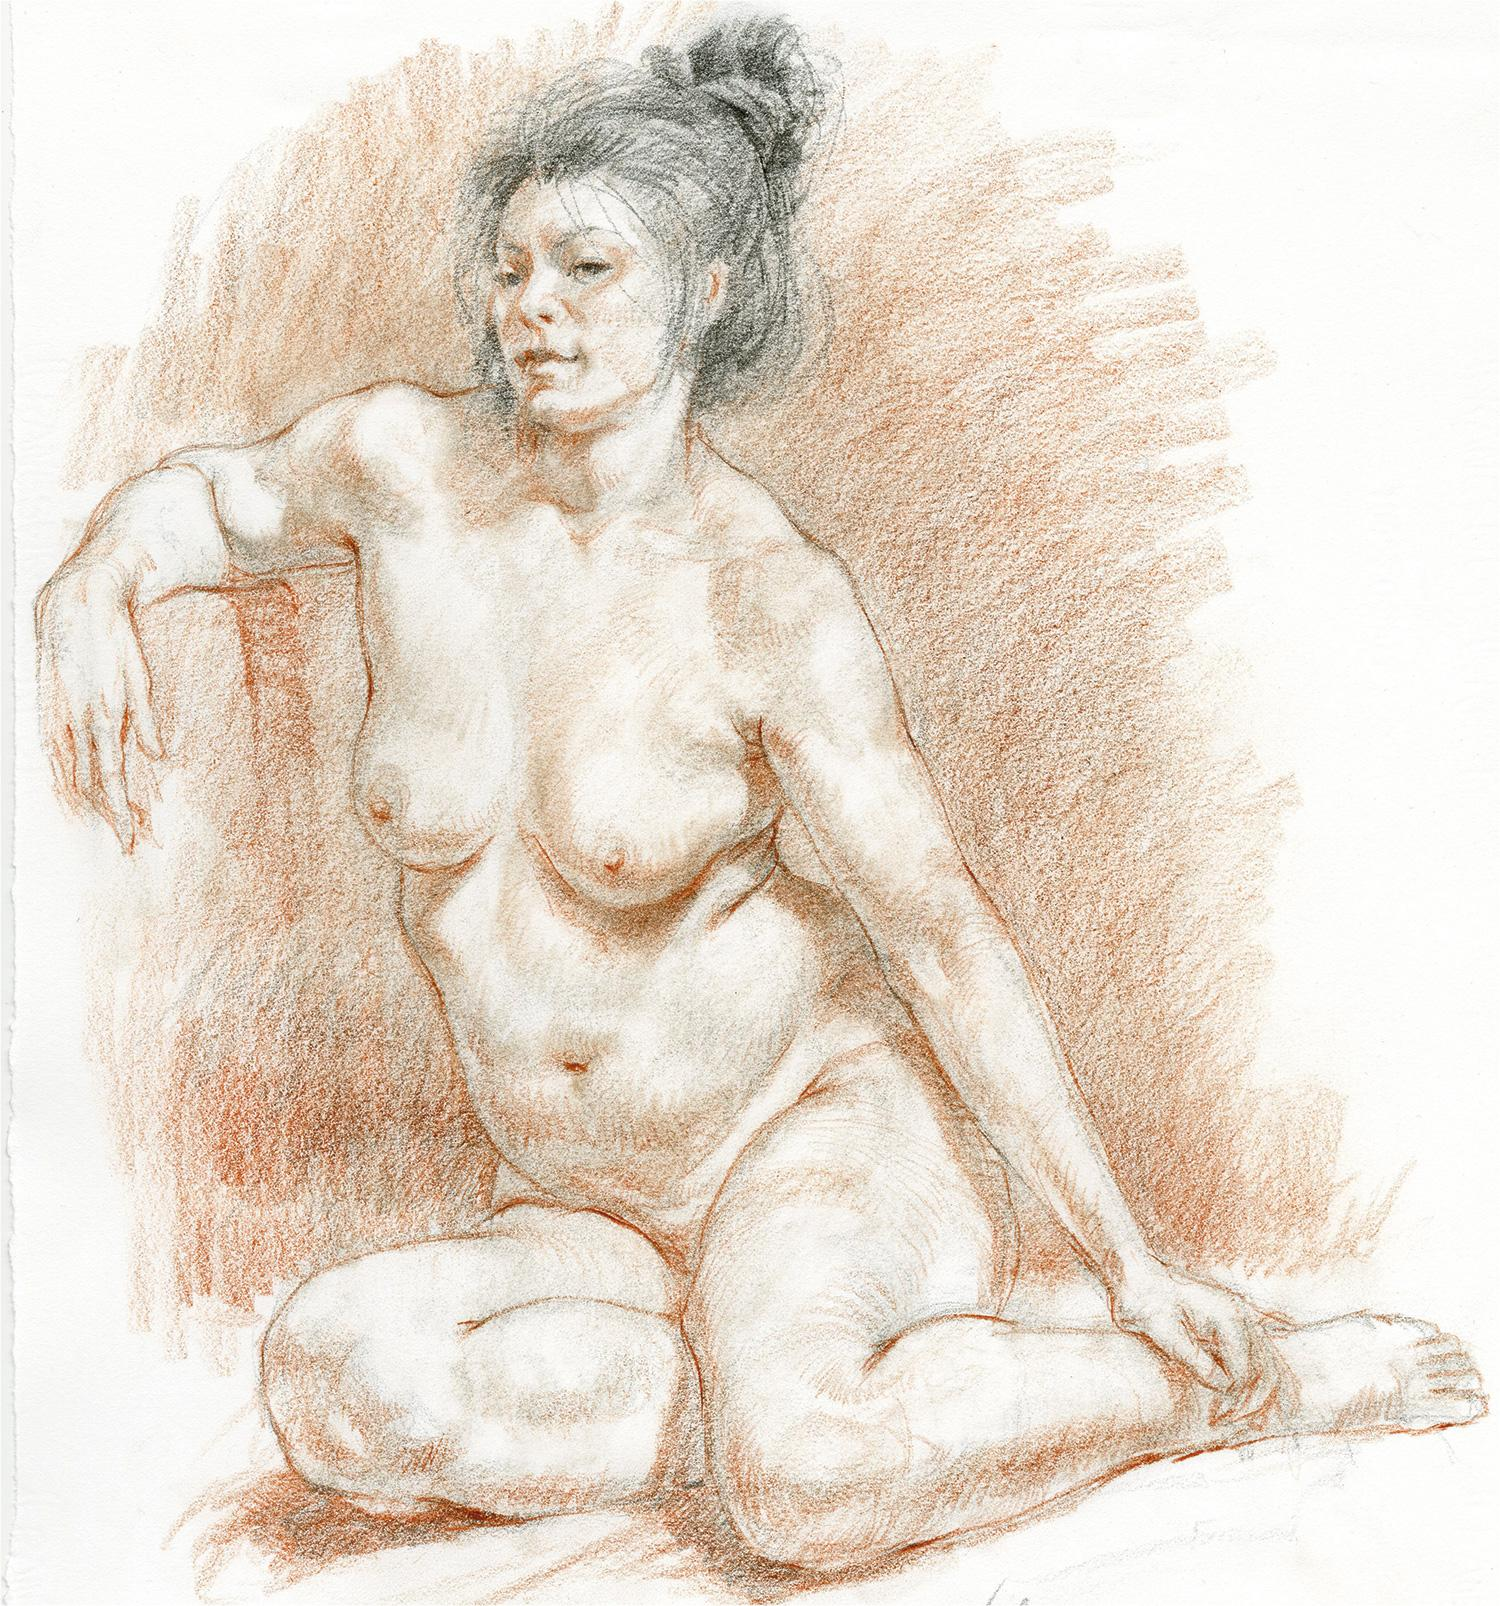 Glenn Vilppu is an industry veteran with half a century-worth of figure drawing experience